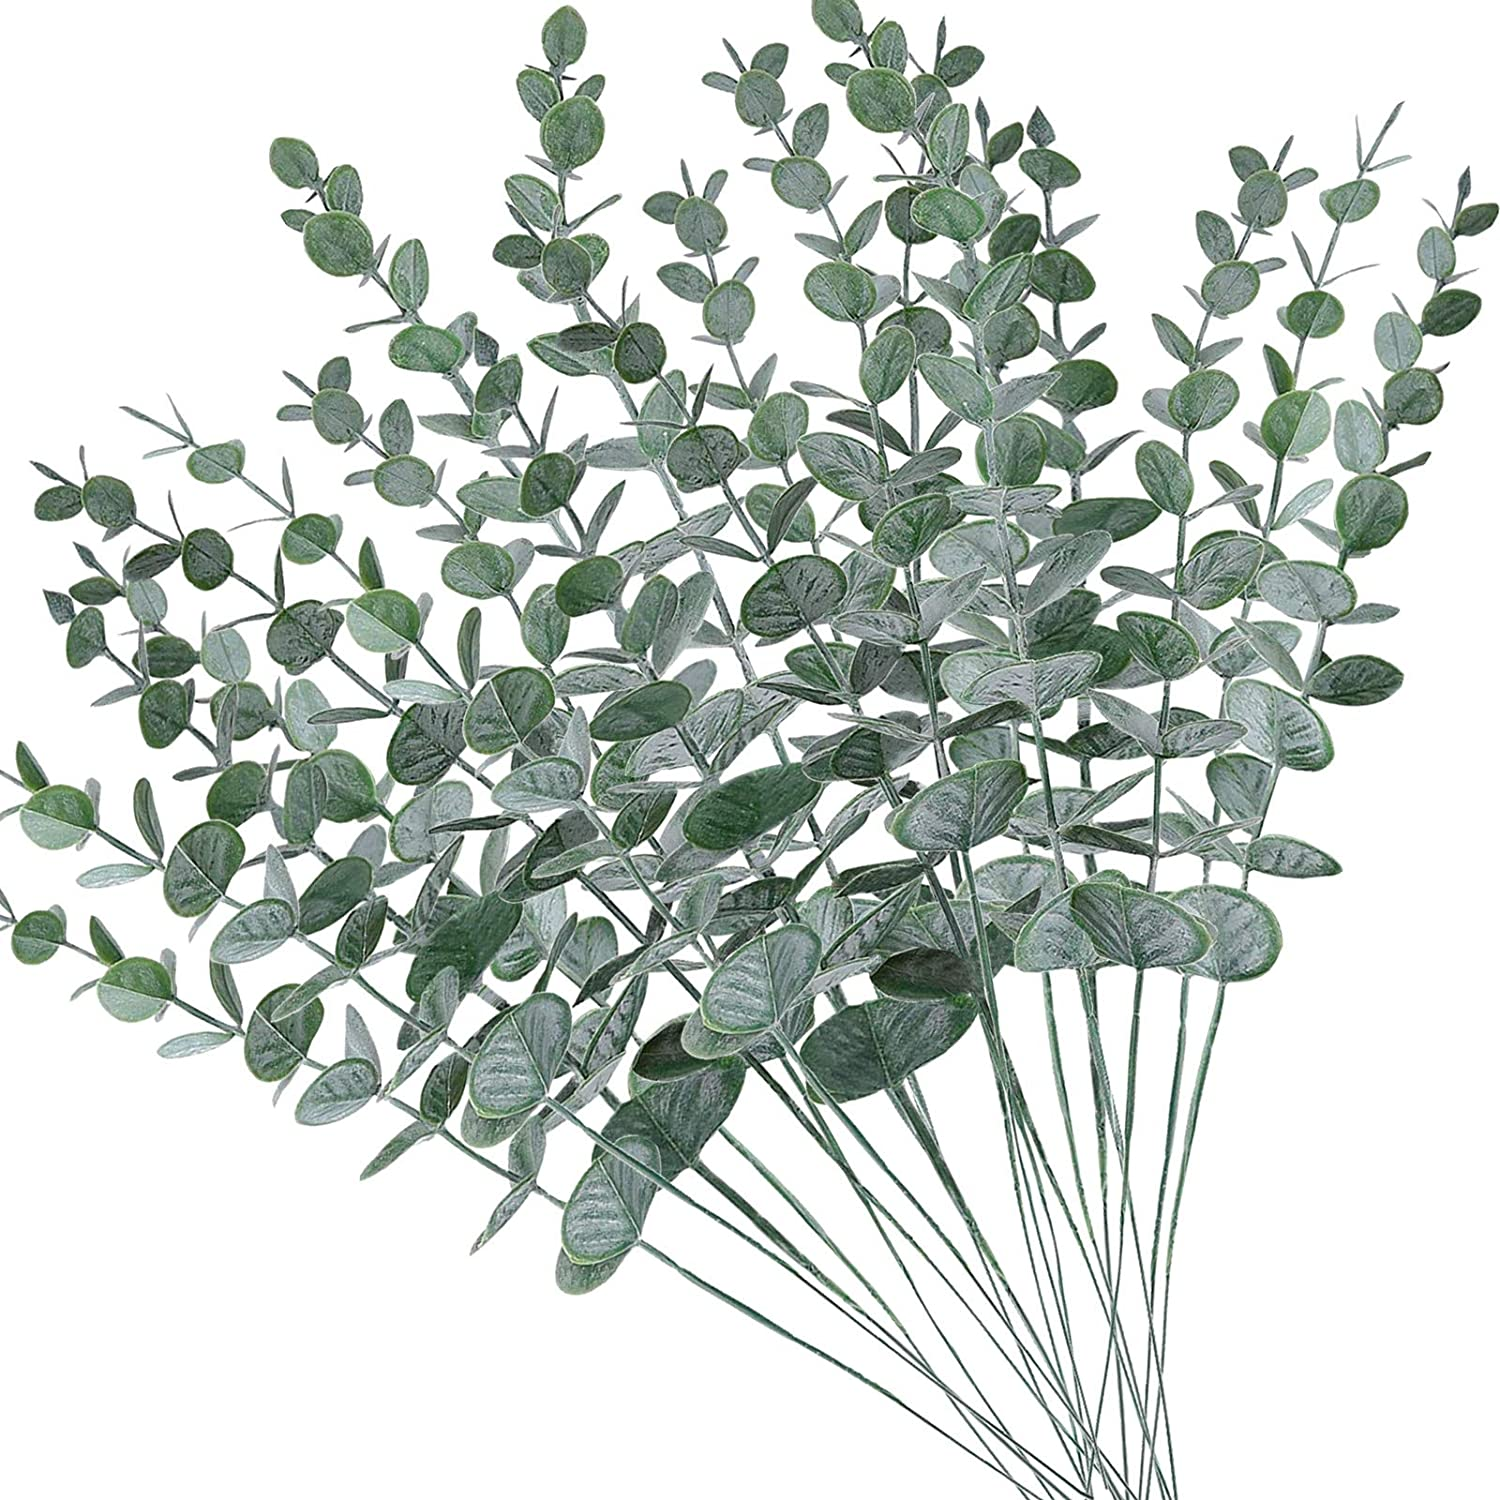 AUMVEYI 20pcs Artificial Eucalyptus Stems Leaves Fake Gray Green Eucalyptuses Plant Branches Faux Greenery Stems for Wedding Bouquet Flower Arrangements Office Home Kitchen Decor